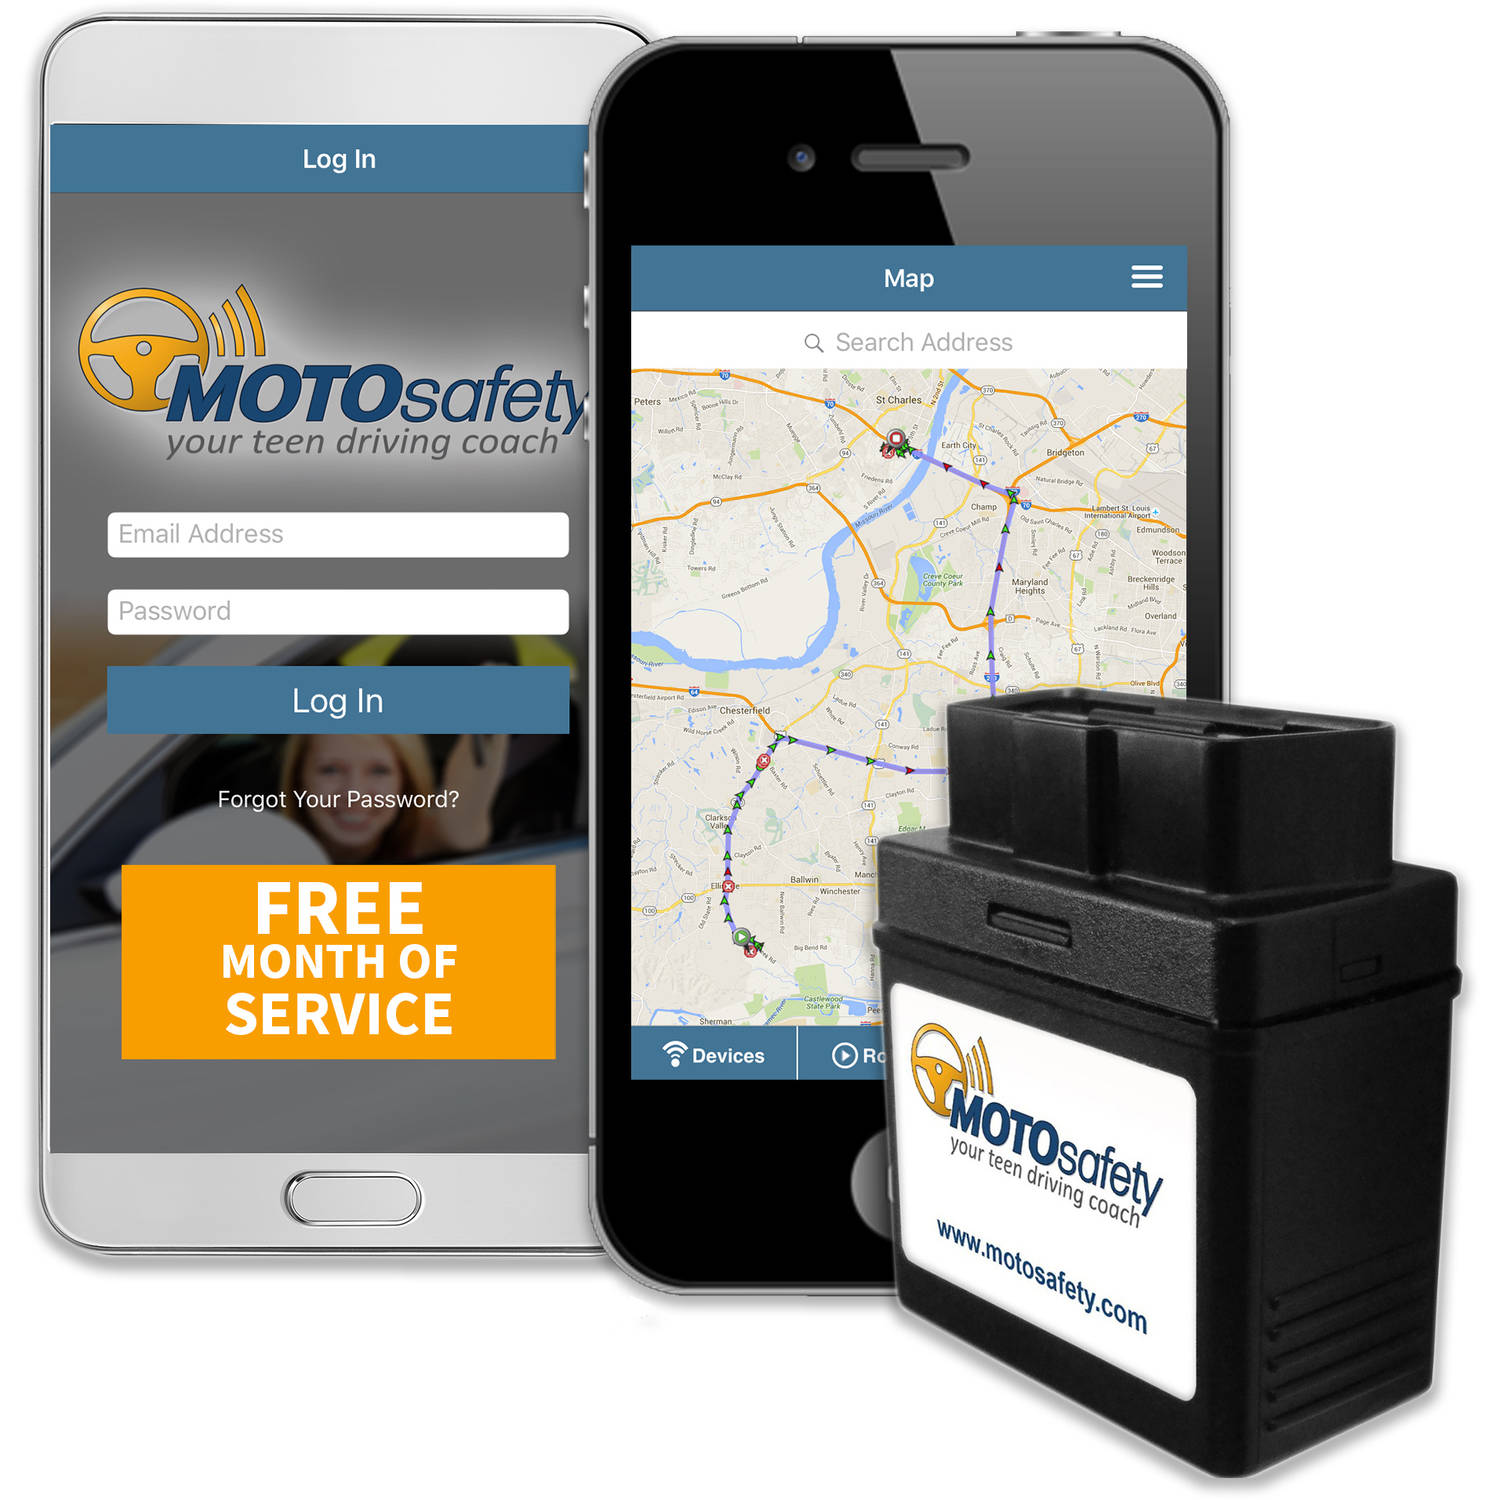 Motosafety Gps Car Tracking Locator For Real Time Teen Driving Coach With Month Of Service